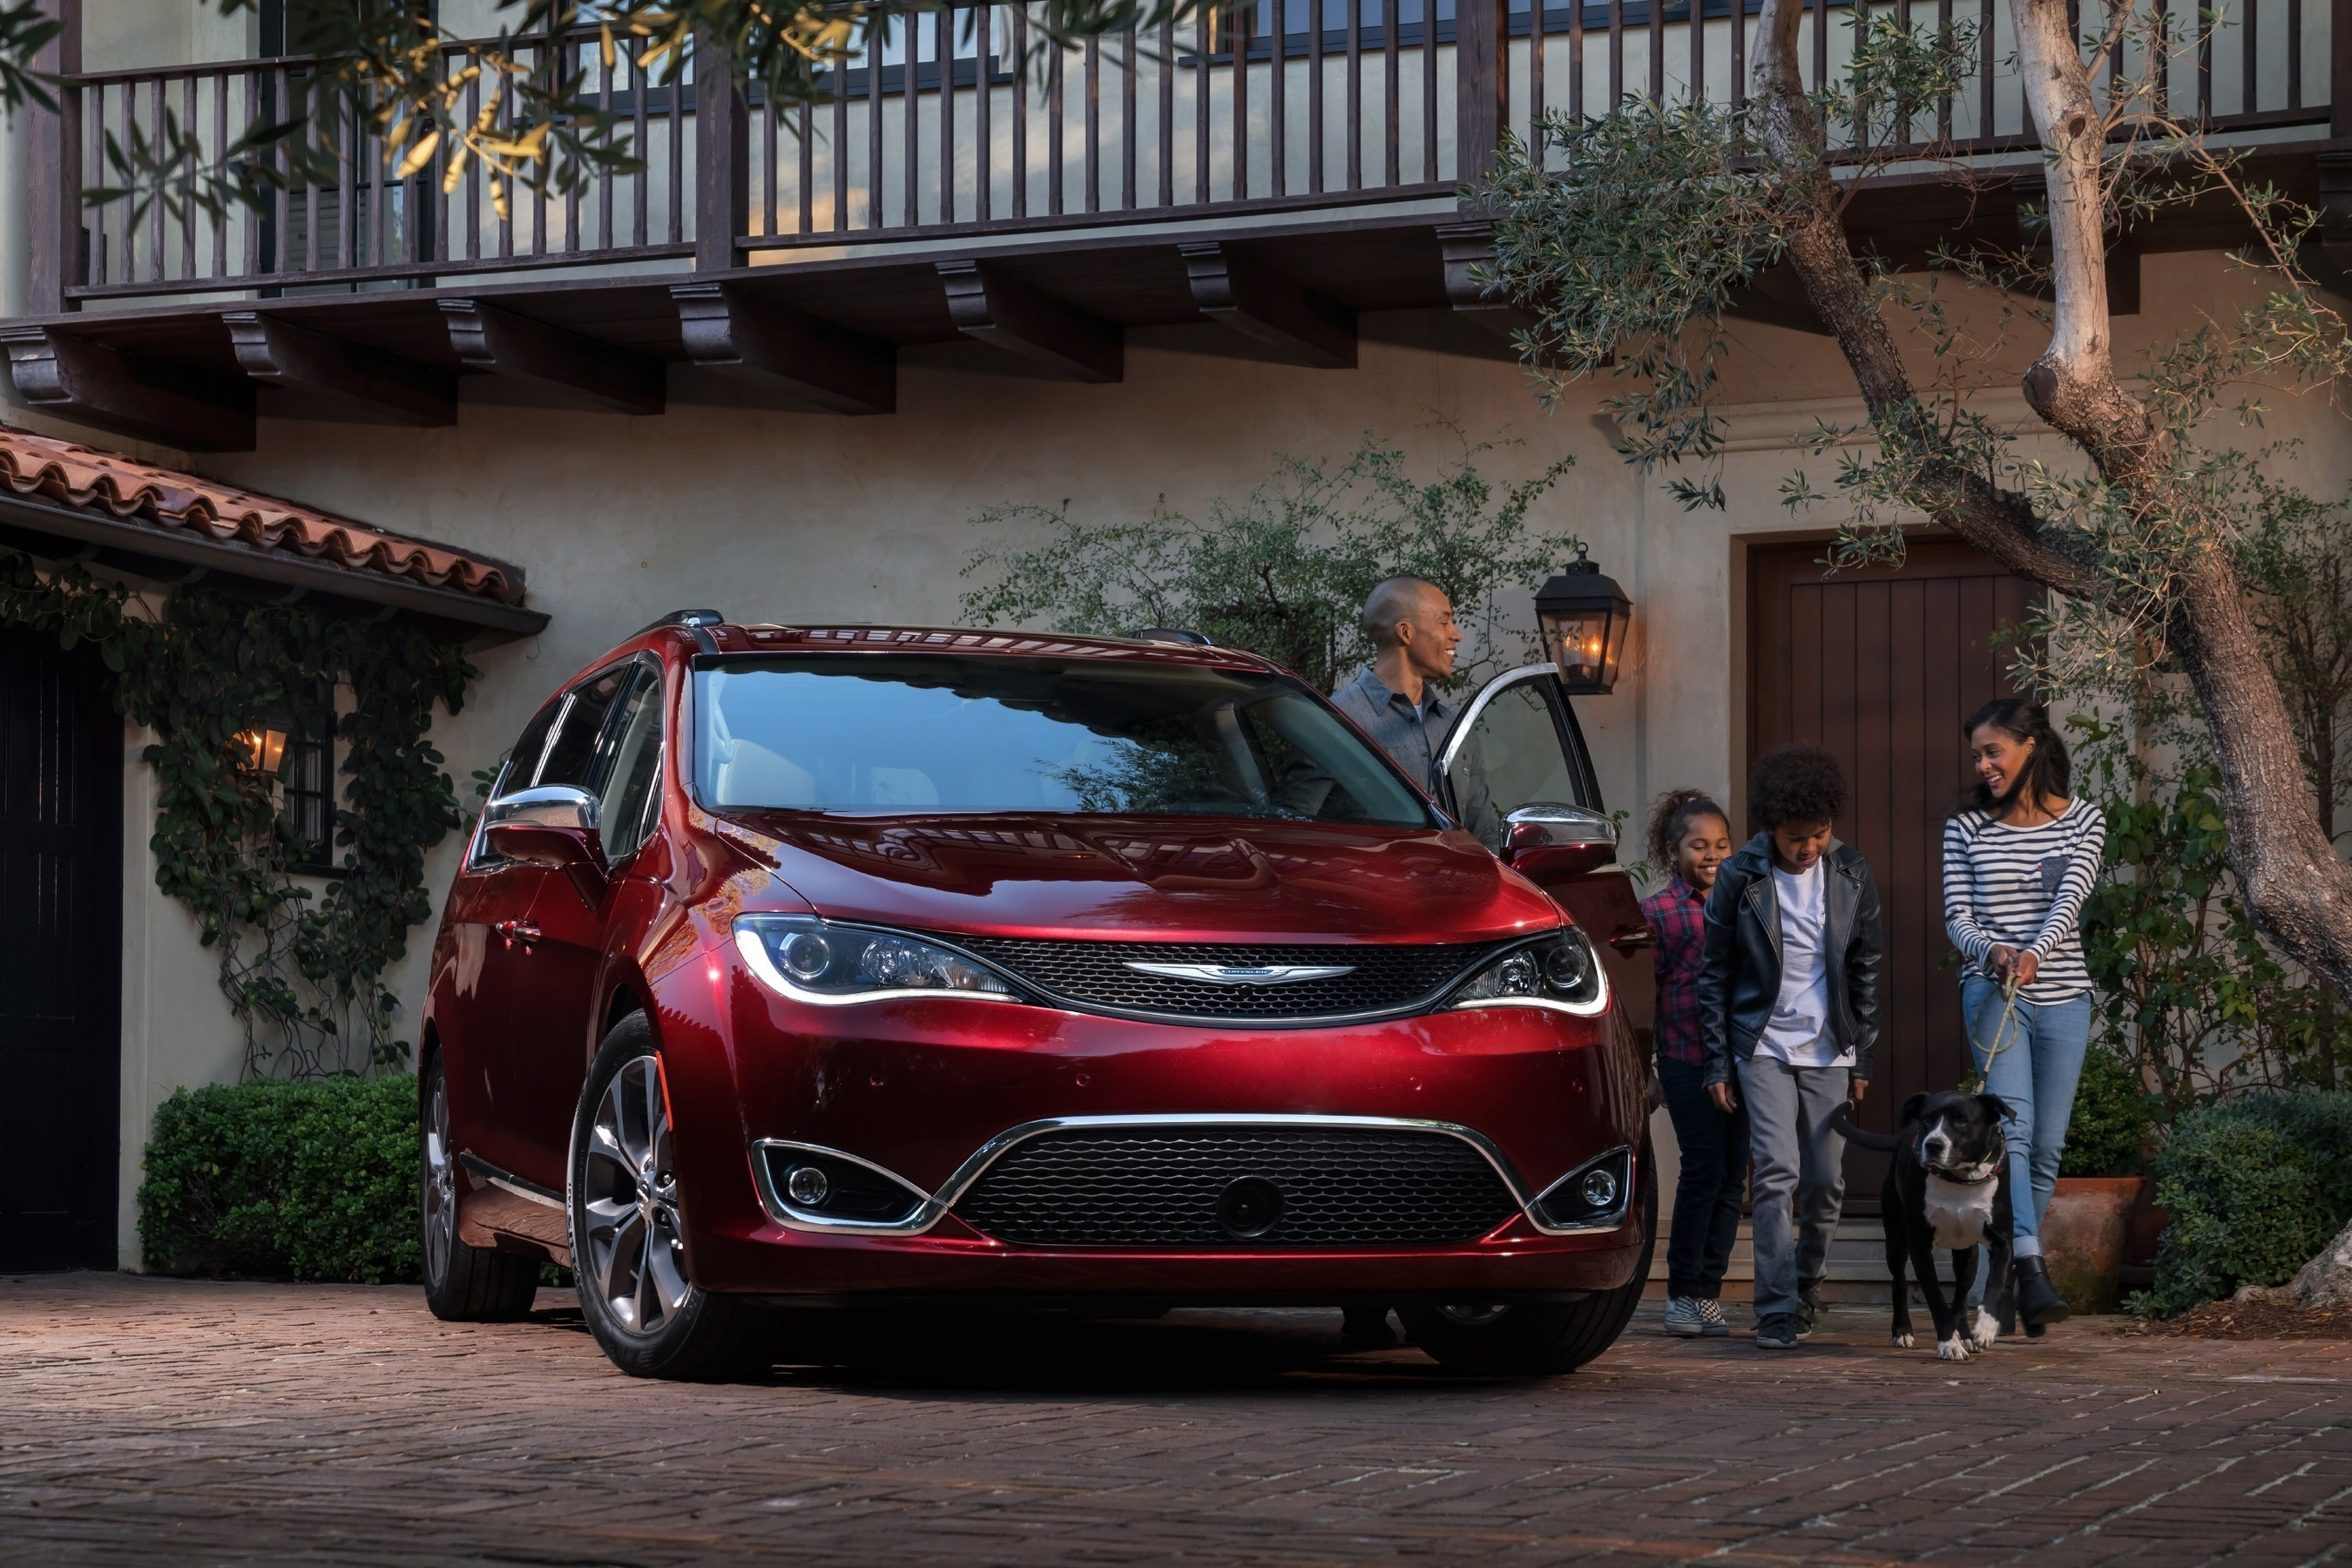 Customer feedback directly influenced many of the 37 segment-first innovations found on the 2017 Chrysler Pacifica